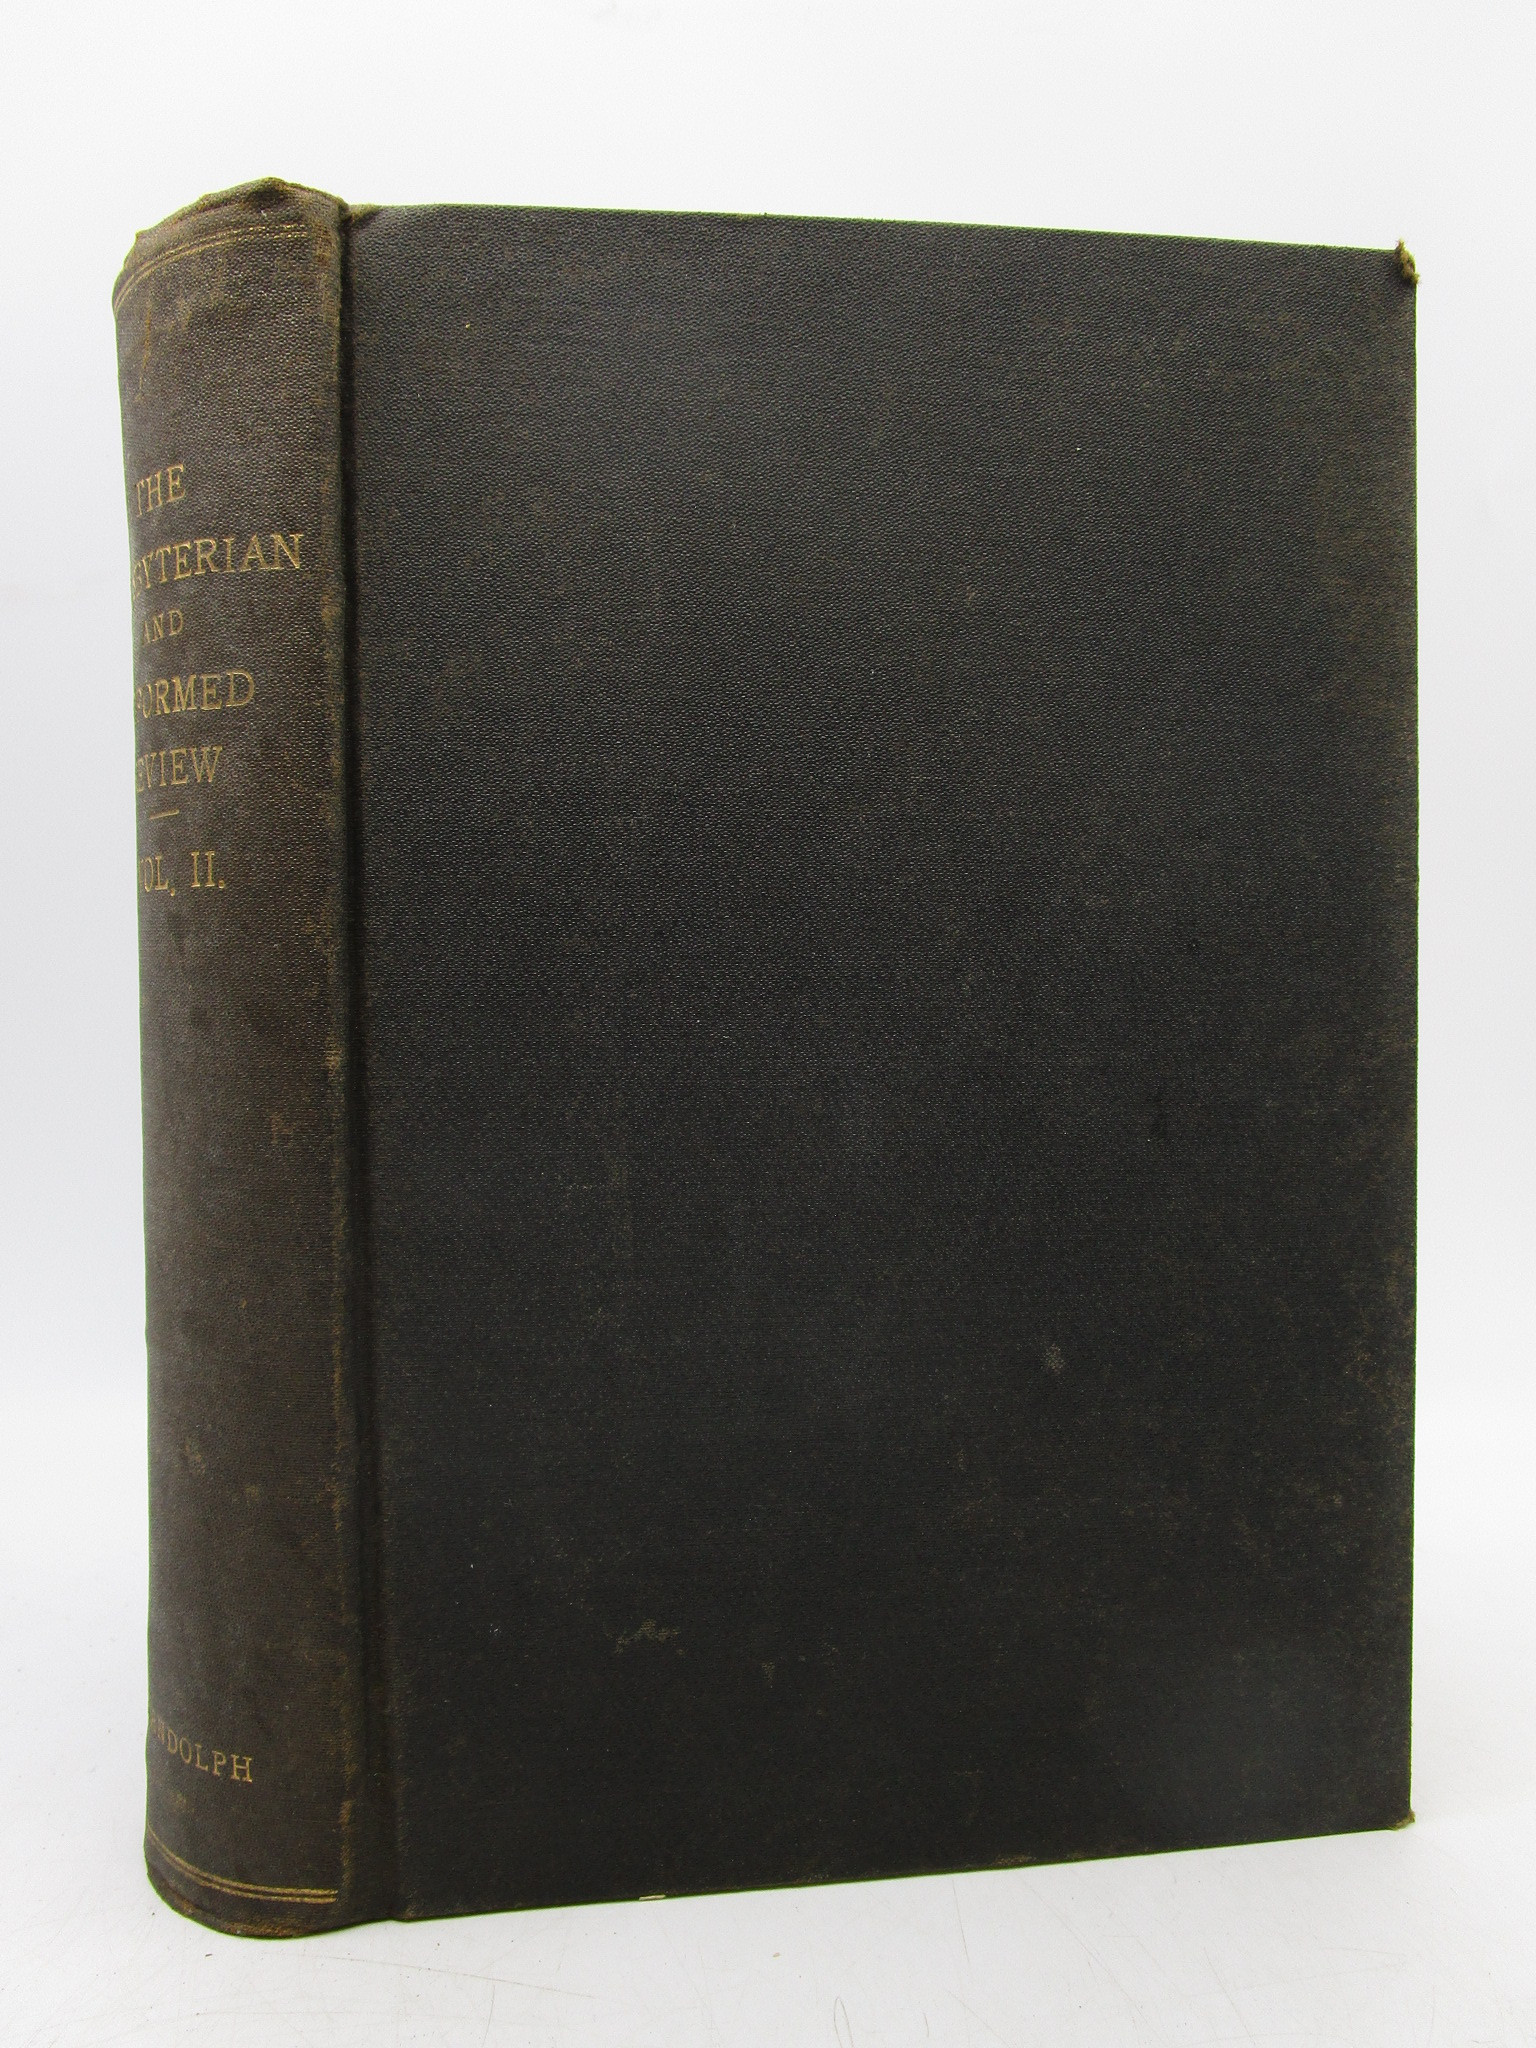 Image for The Presbyterian and Reformed Review (Volume II, 1891) First Edition [From the Library of Morton H. Smith]